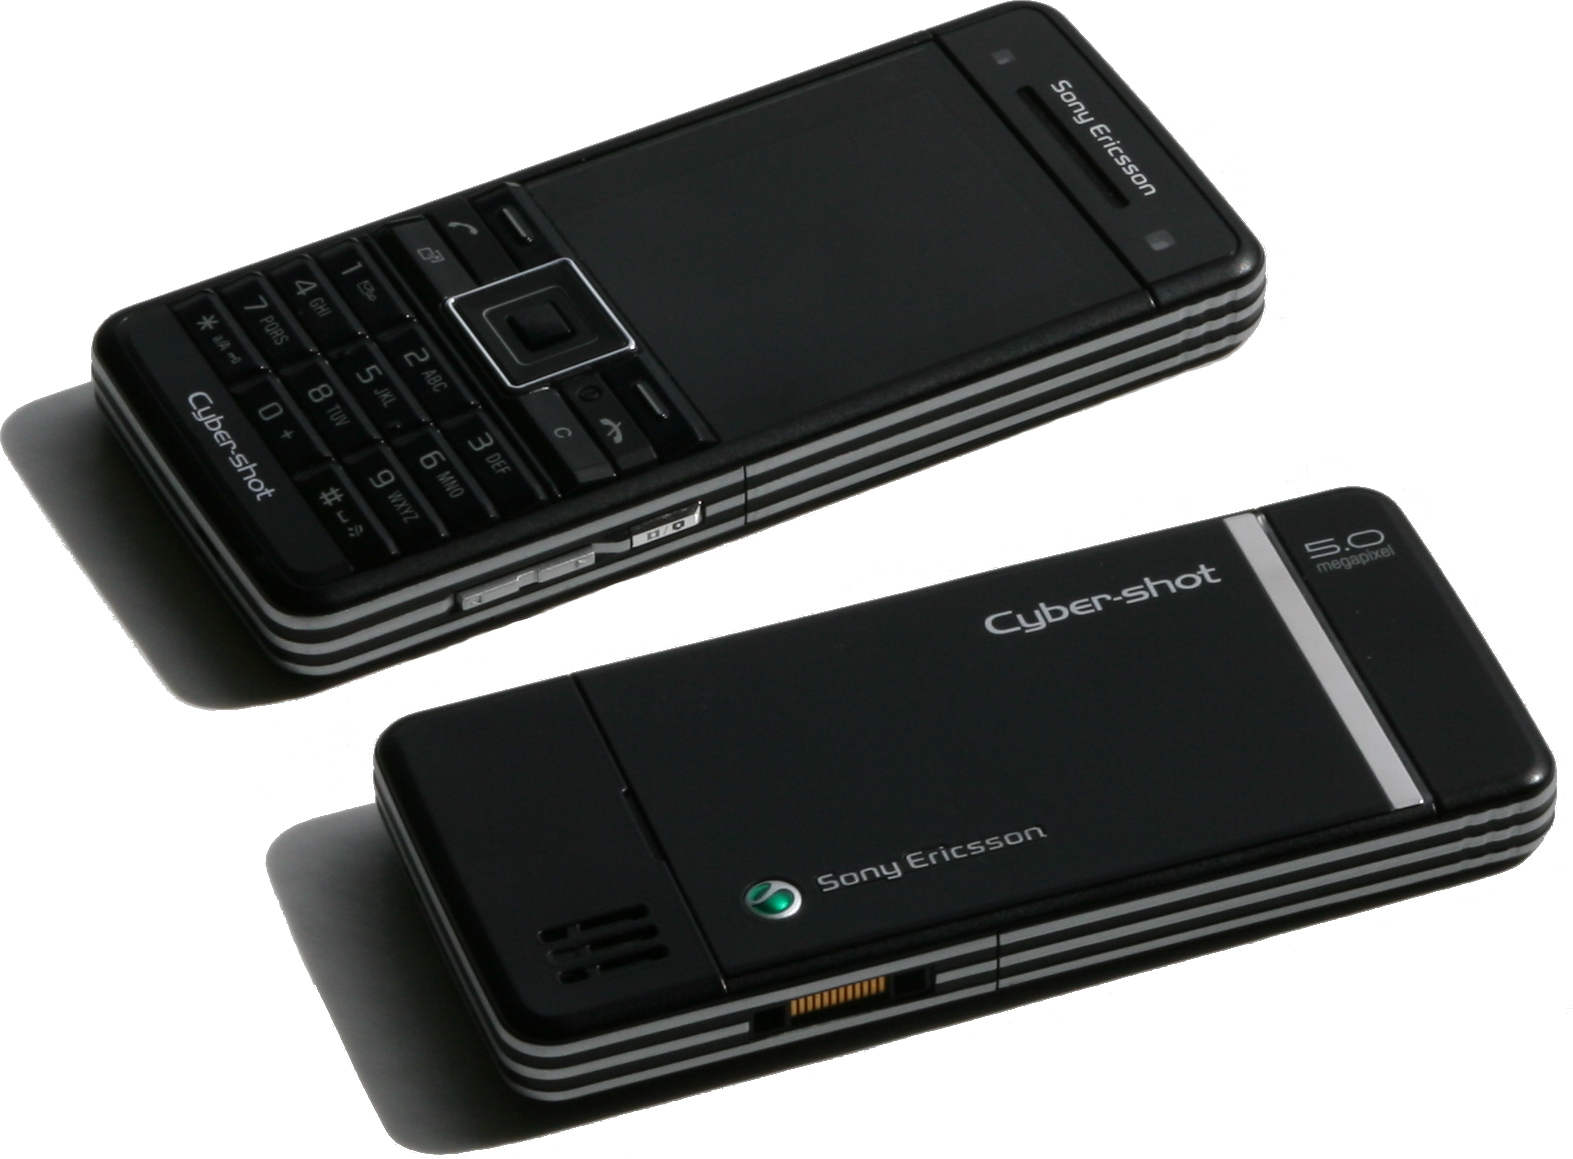 sony ericsson View and download sony ericsson walkman w595 user manual online sony ericsson mobile phone user manual walkman w595 cell phone pdf manual download thank you for.